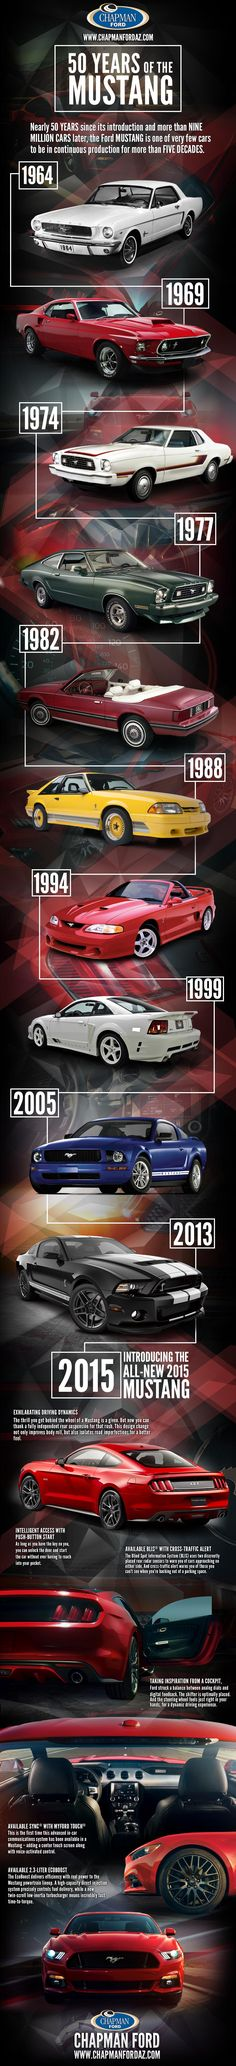 50 Years of the Ford Mustang in one beautiful poster by Leah Cook of Chapman Automotive Group. #chapmanfordaz #fordmustang50 #Mustang #FordMustang